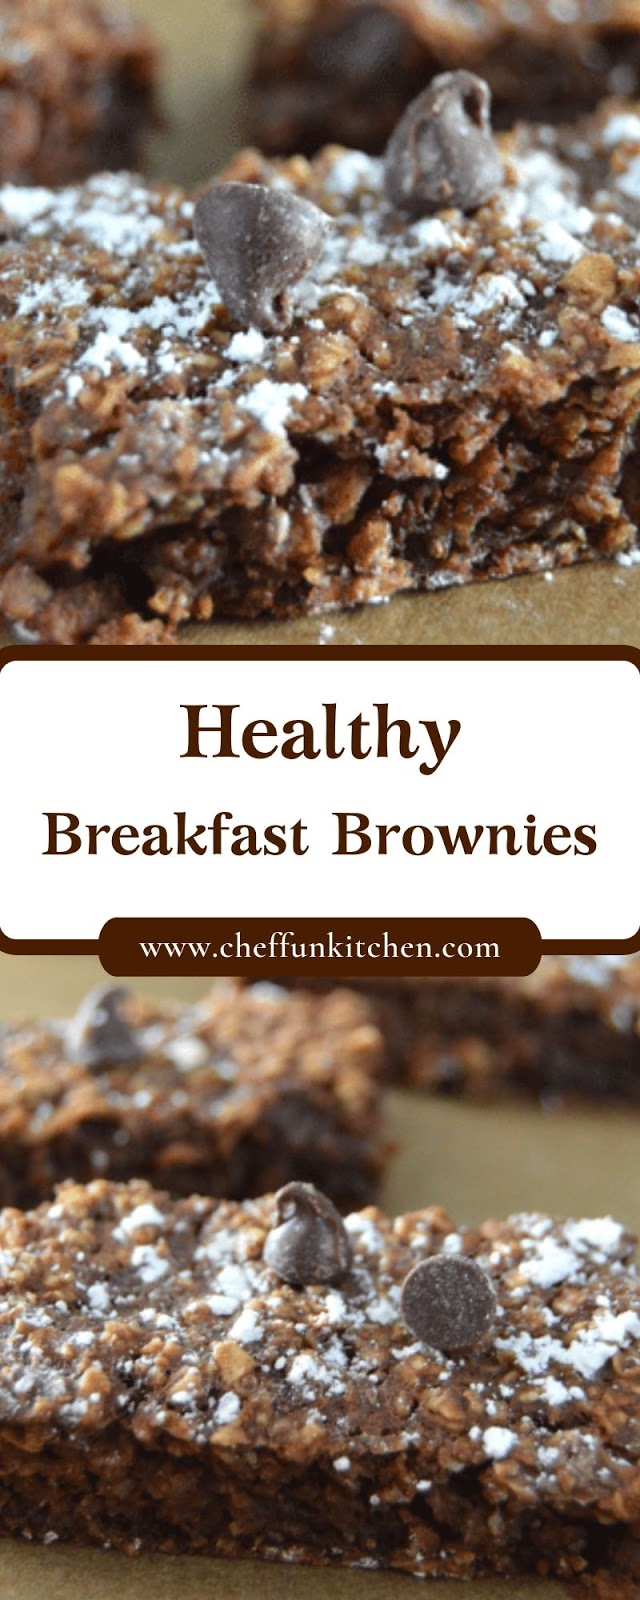 Healthy Breakfast Brownies